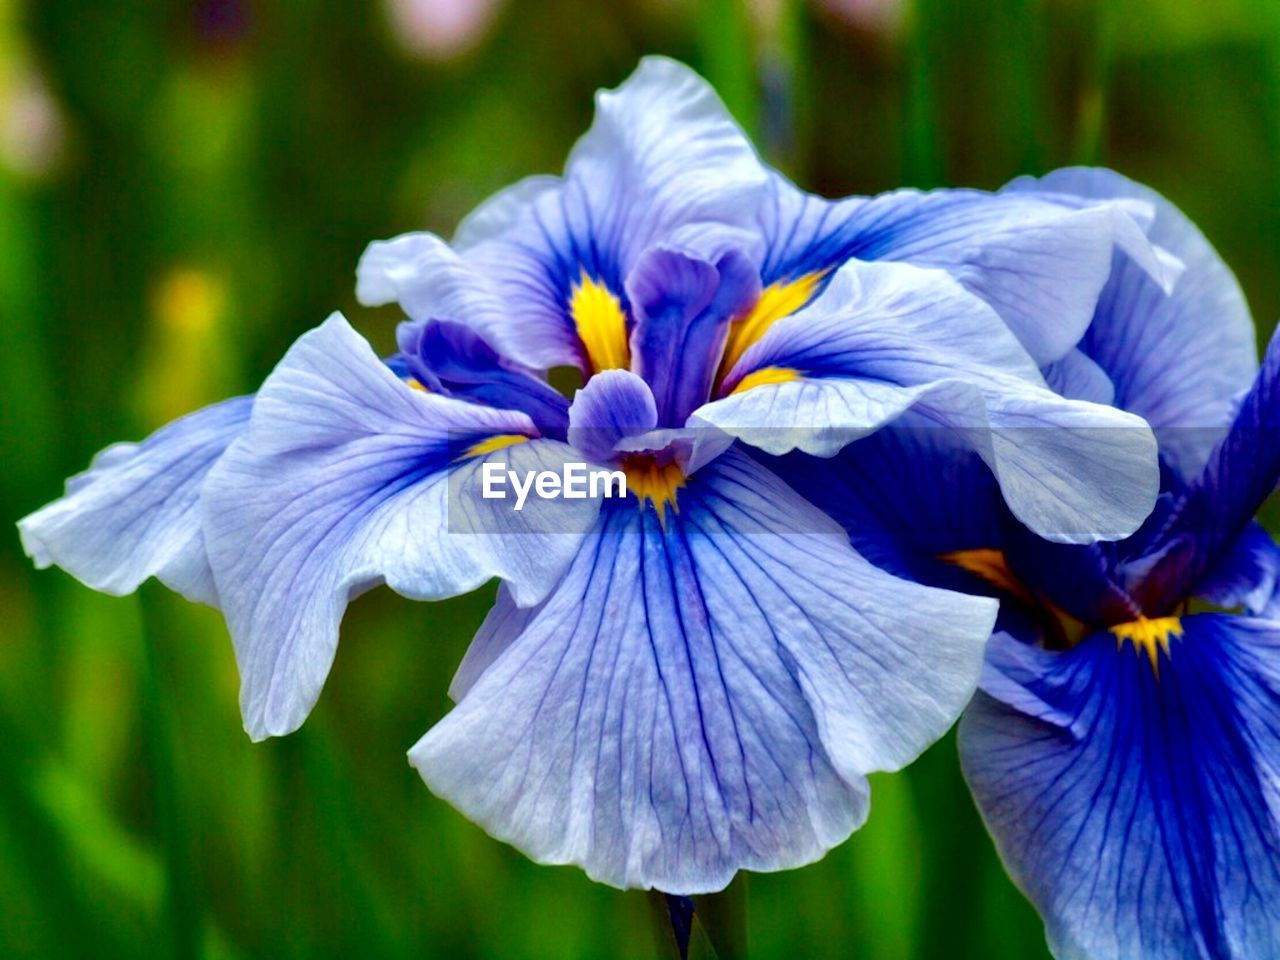 flowering plant, flower, fragility, vulnerability, freshness, petal, plant, beauty in nature, flower head, inflorescence, close-up, growth, purple, blue, focus on foreground, nature, no people, day, iris - plant, botany, pollen, softness